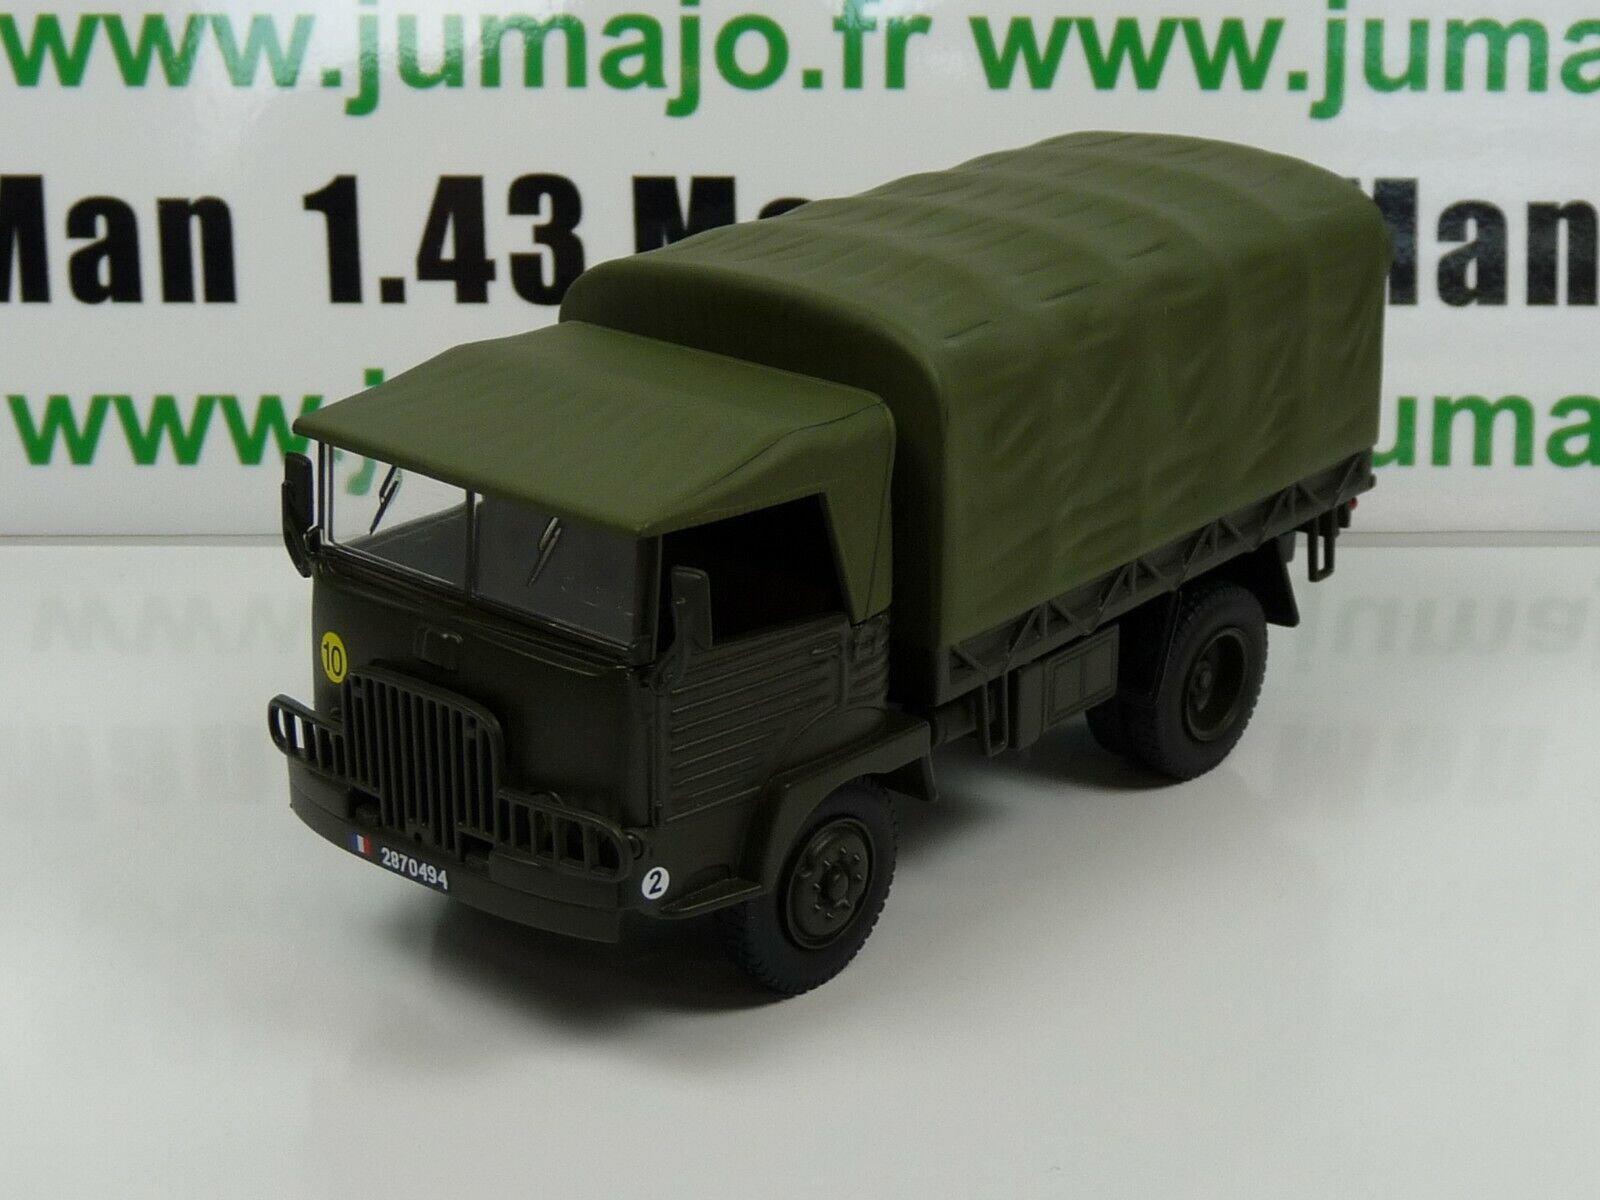 Vmf3b Military French Direkt Ixo 1 43 43 43 Simca F594 W 4x4 Plateau Covered Troops 24867c